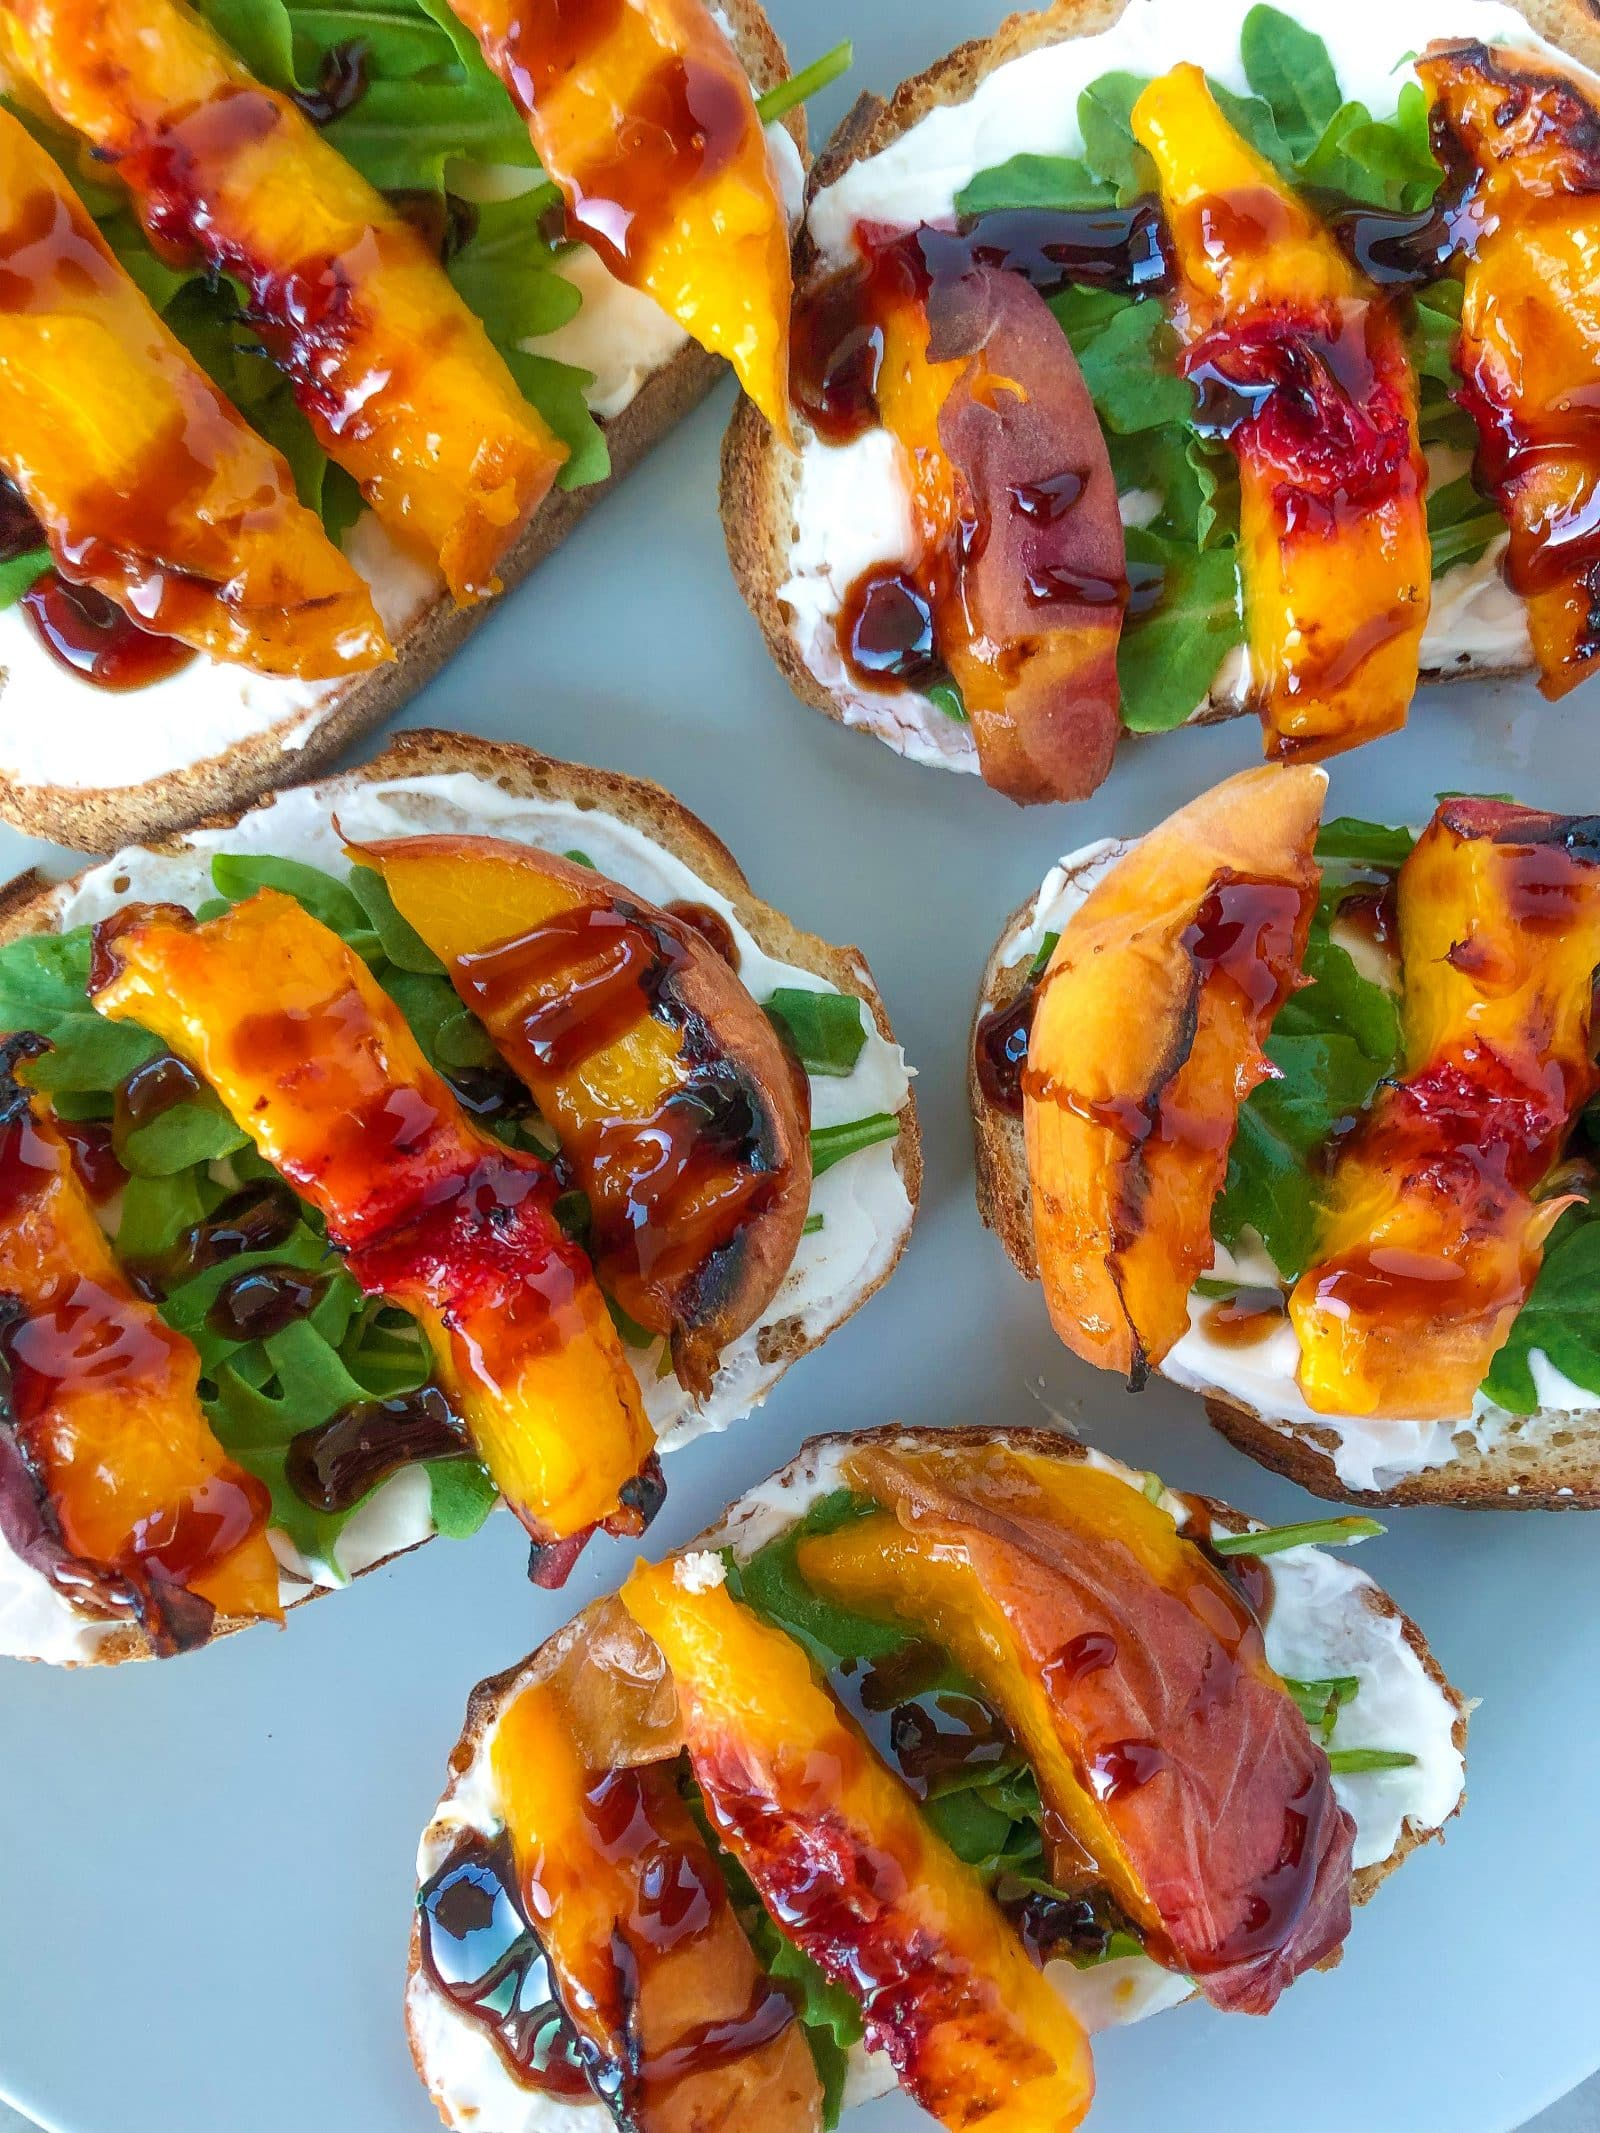 Grilled Peach Crostini With Arugula And Balsamic Reduction Megunprocessed